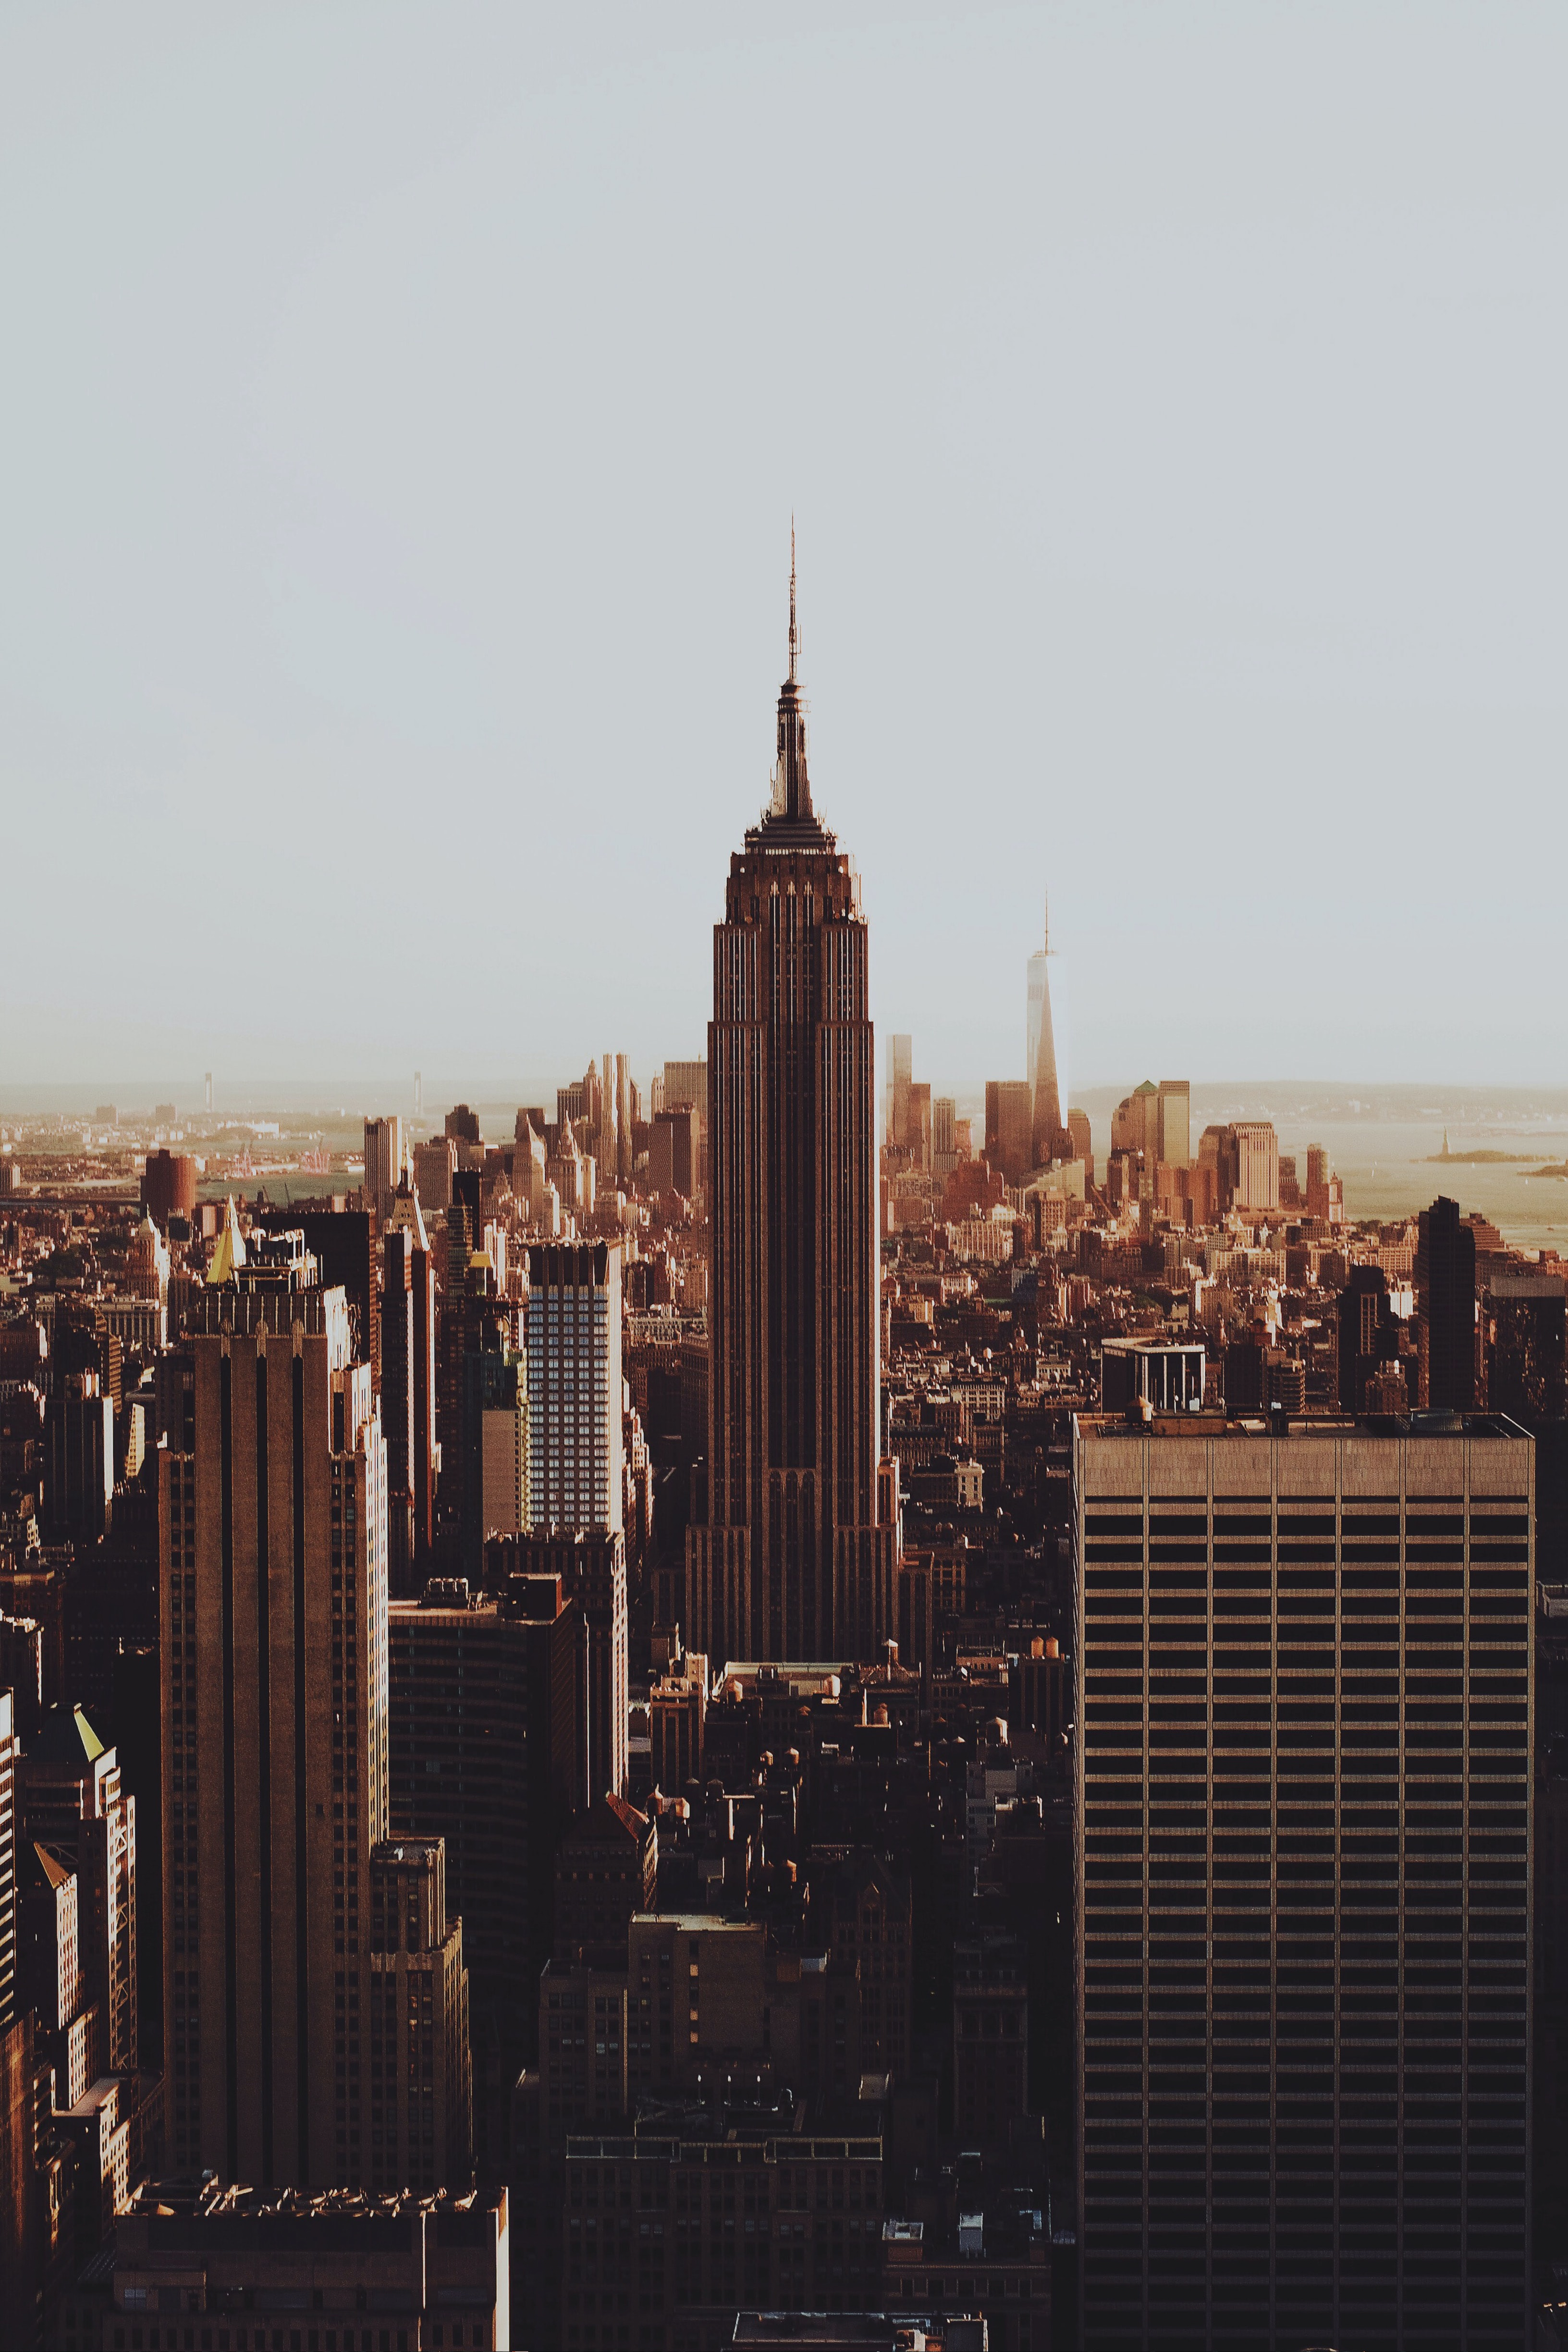 The Empire State Building against the skyline of New York